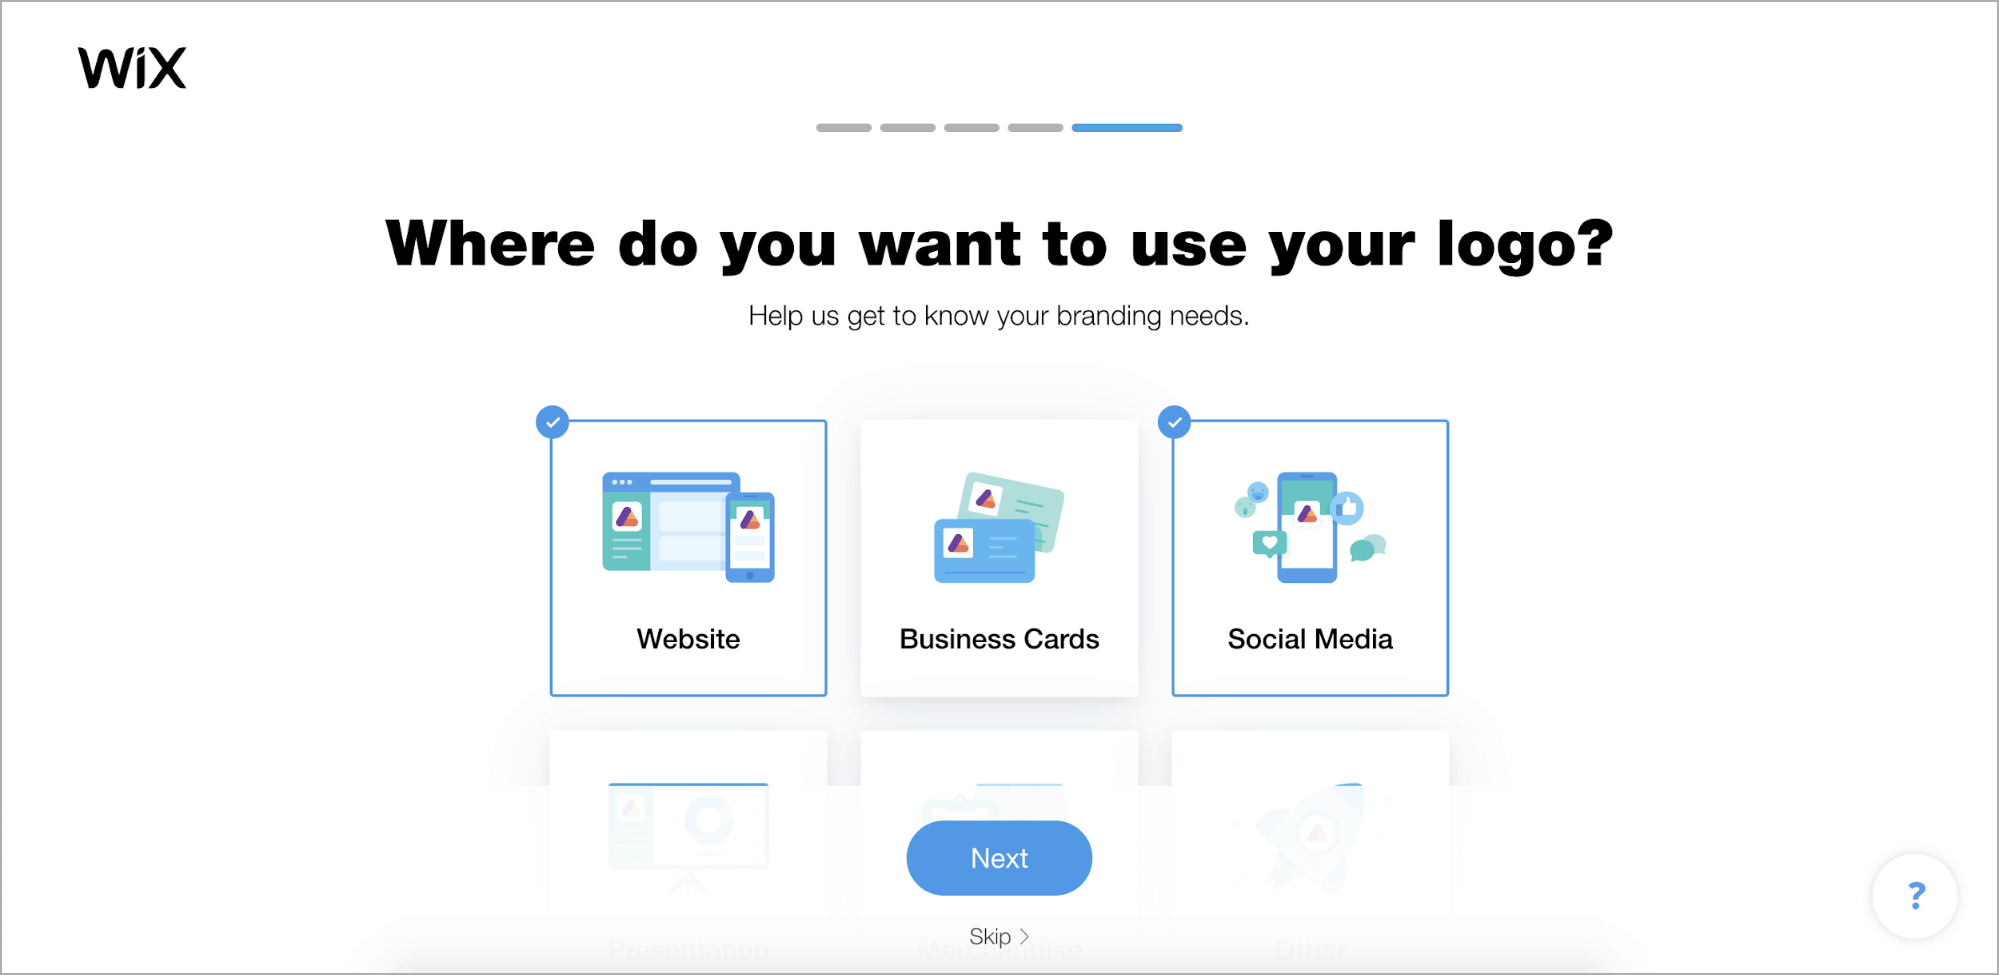 Wix Logo Maker screenshot - Where do you want to use your logo?